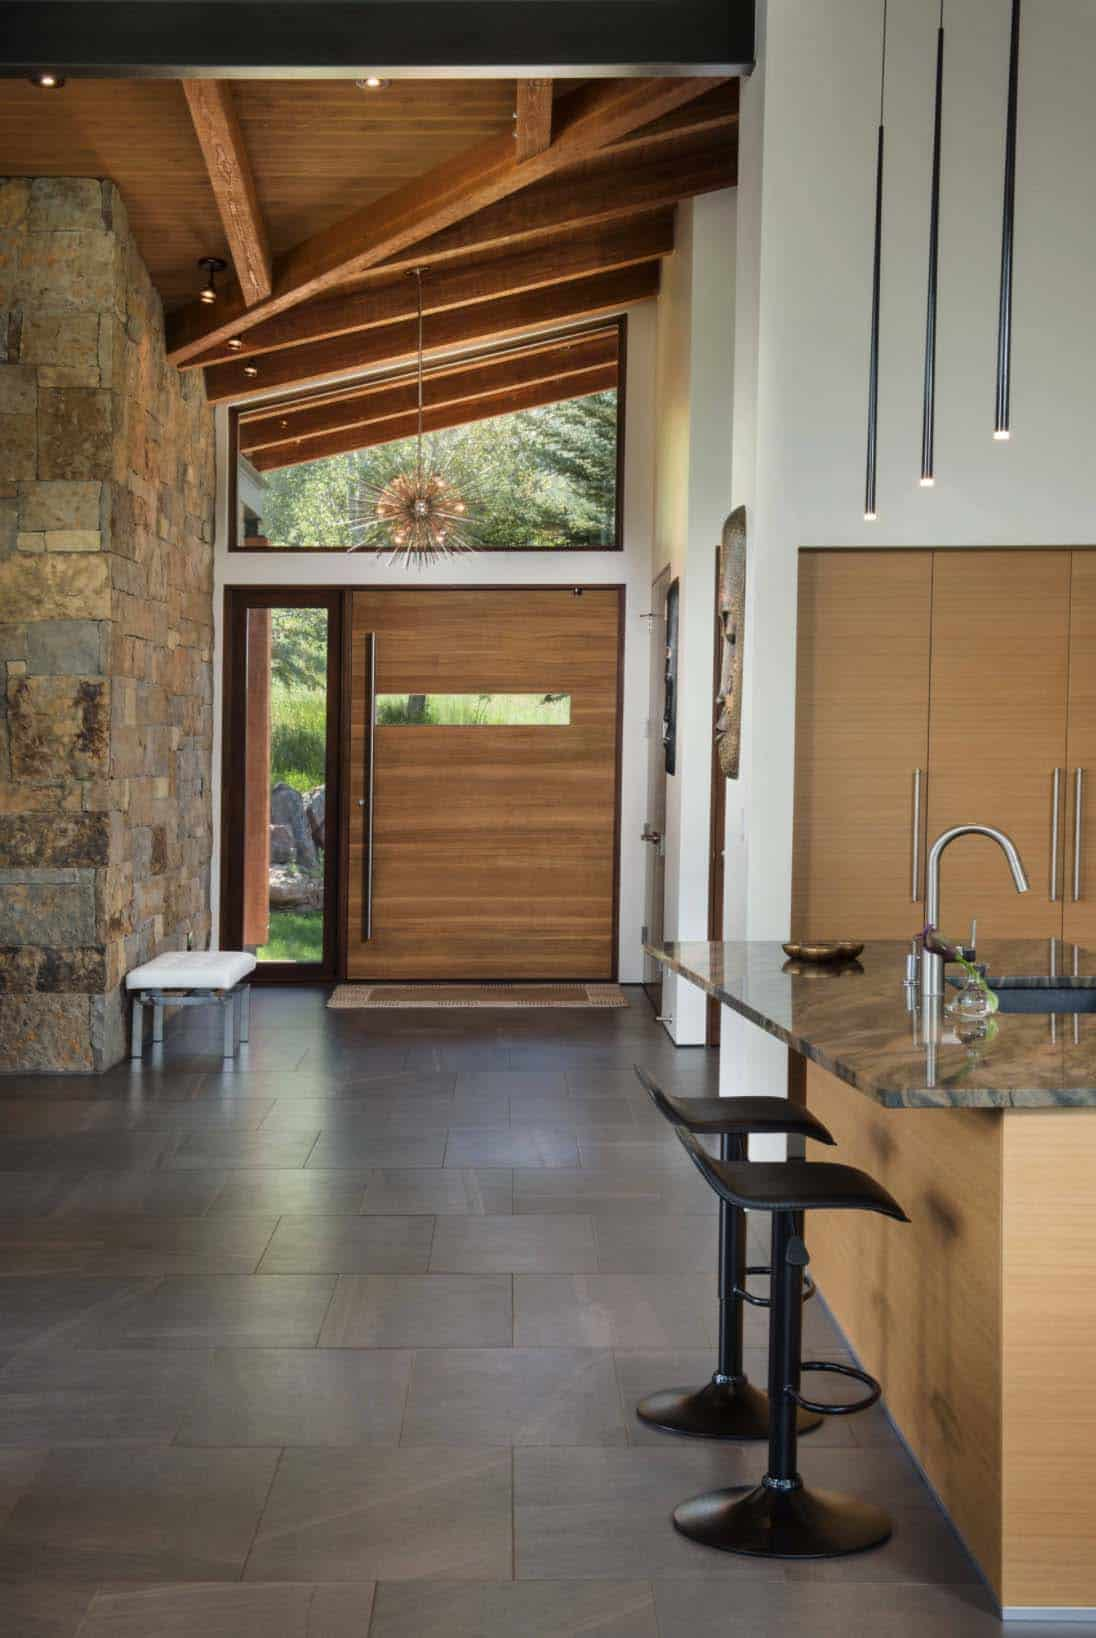 Contemporary Mountain Home Renovation-Berglund Architects-02-1 Kindesign